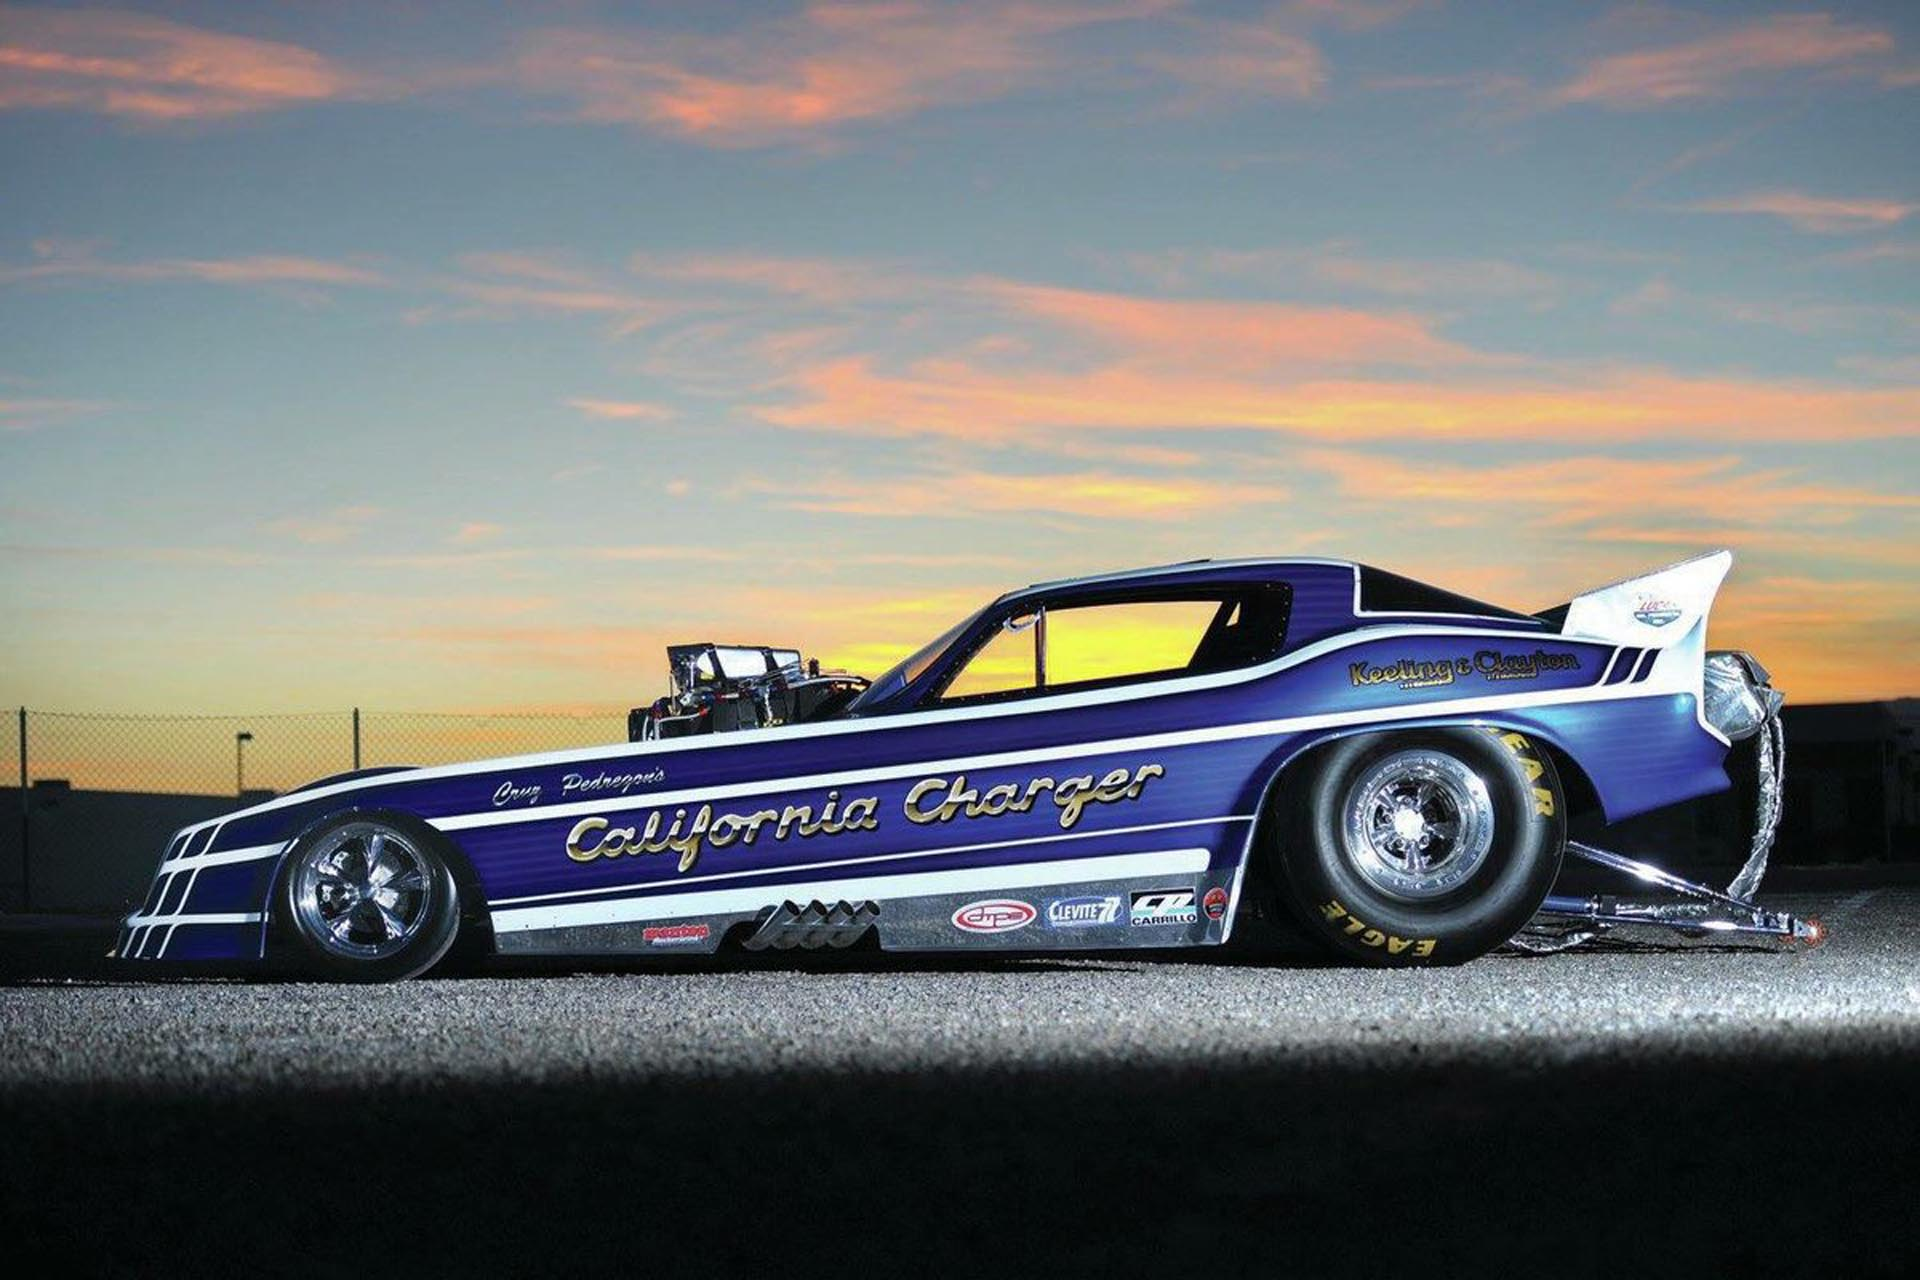 2012 Pontiac Firebird Race Car